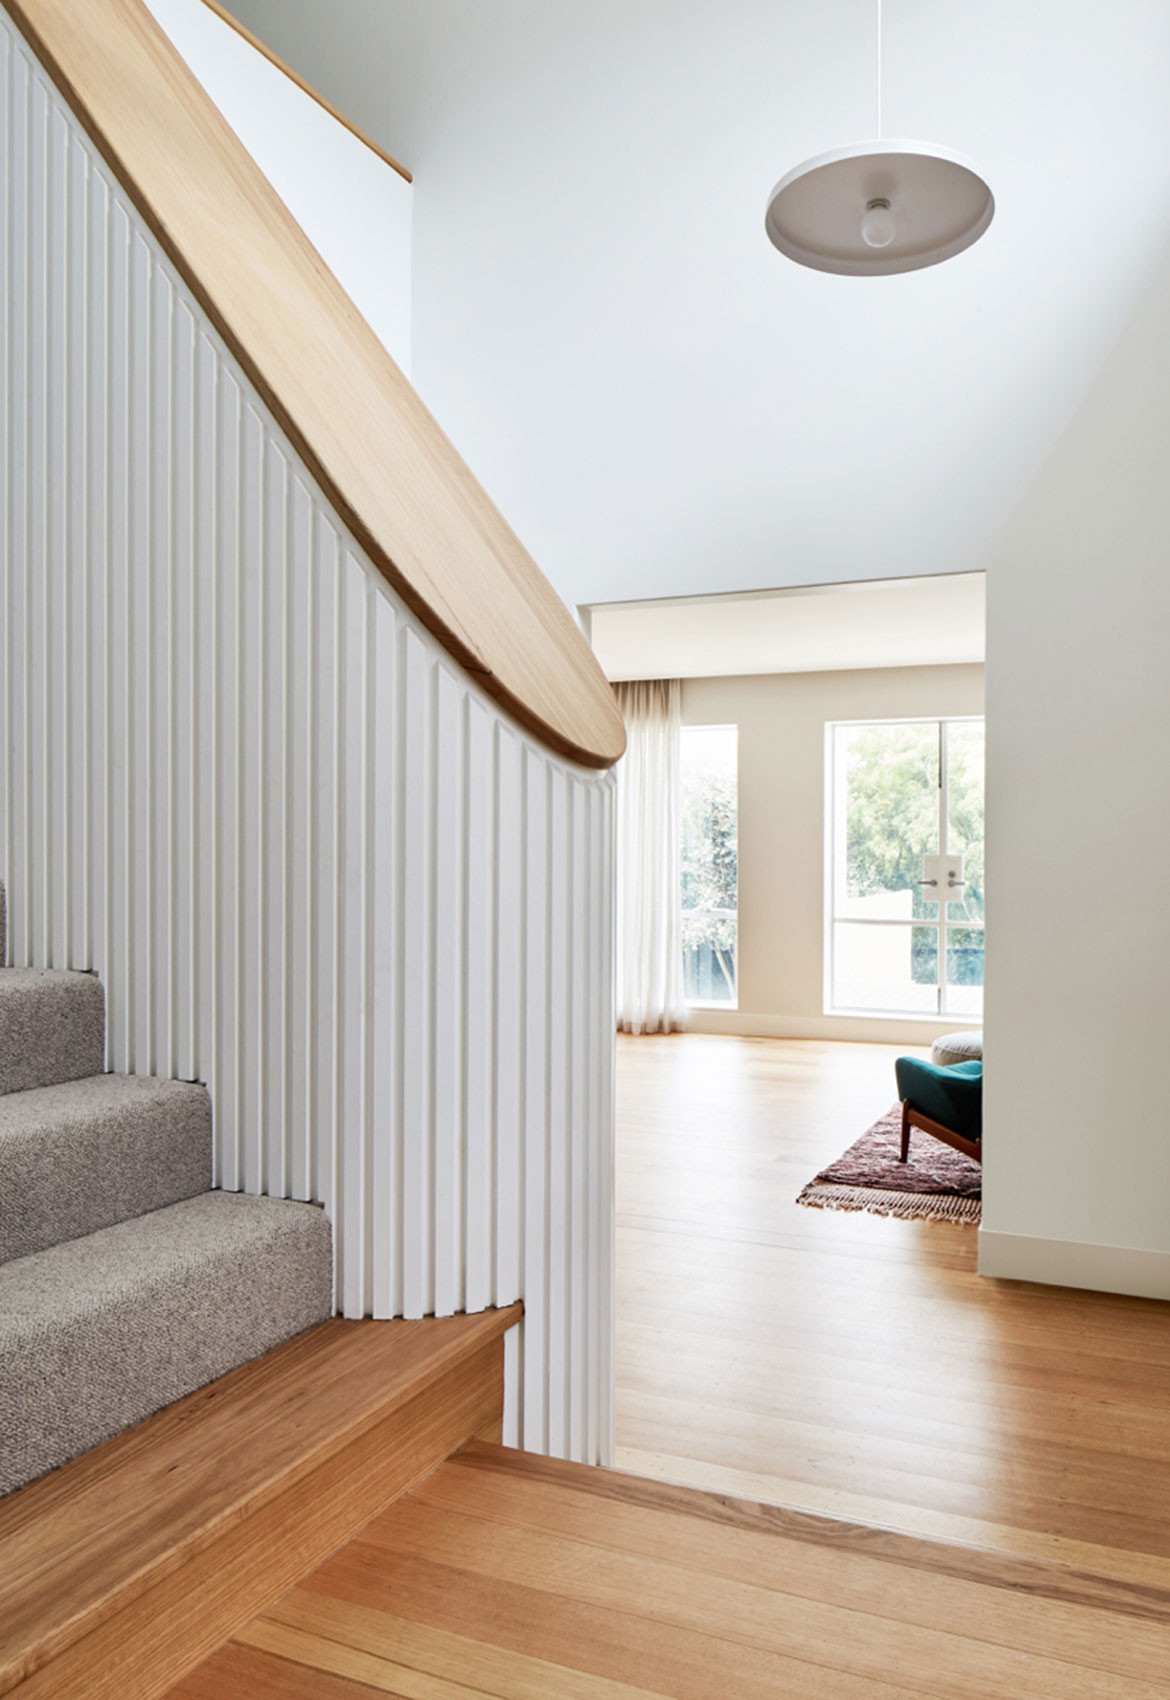 Holroyd Court Foomann Architects cc Willem Dirk du Toit staircase